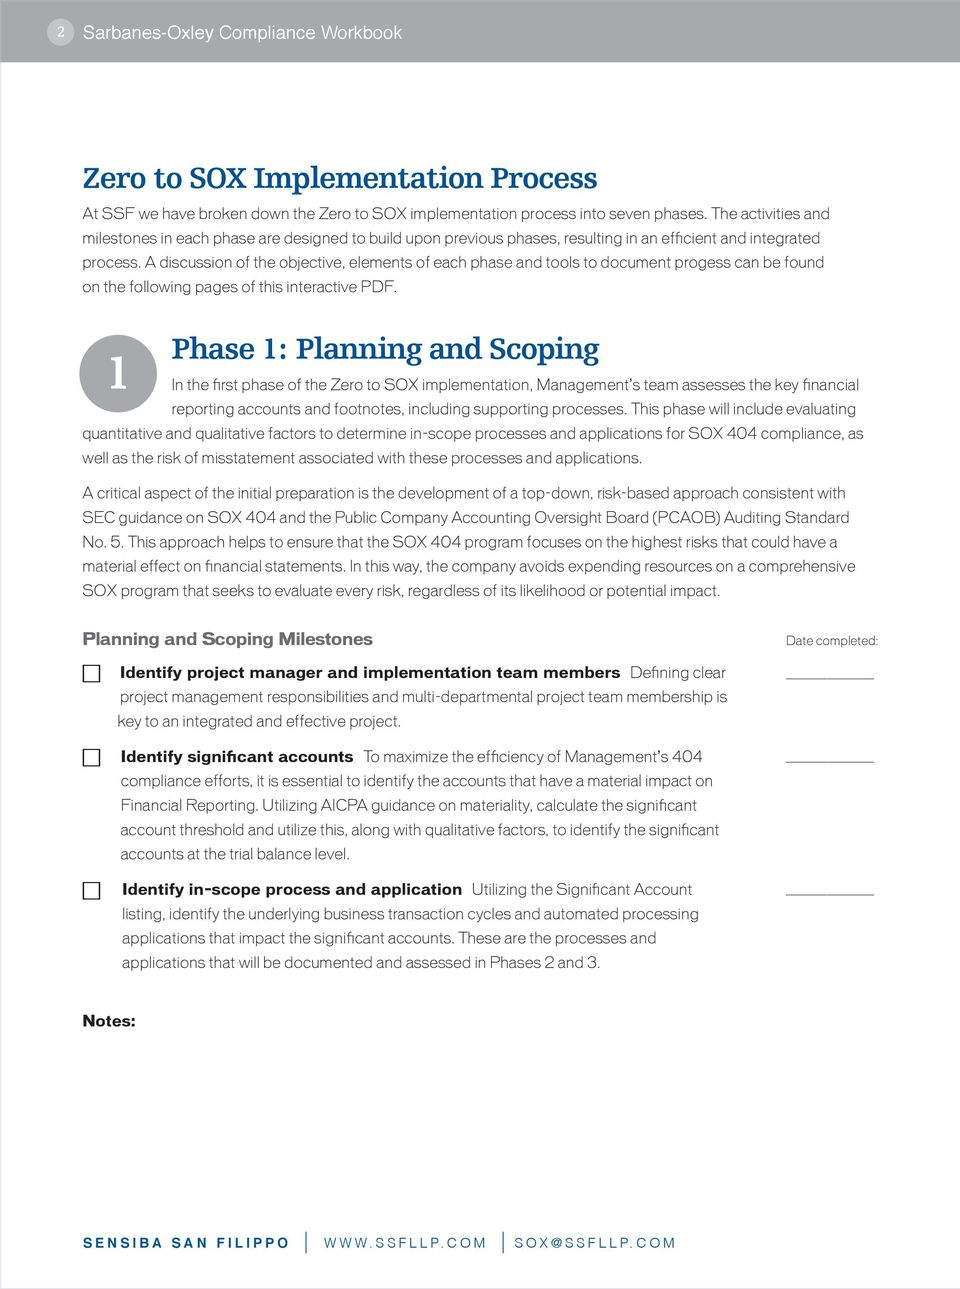 A discussion of the objective, elements of each phase and tools to document progess can be found on the following pages of this interactive PDF.